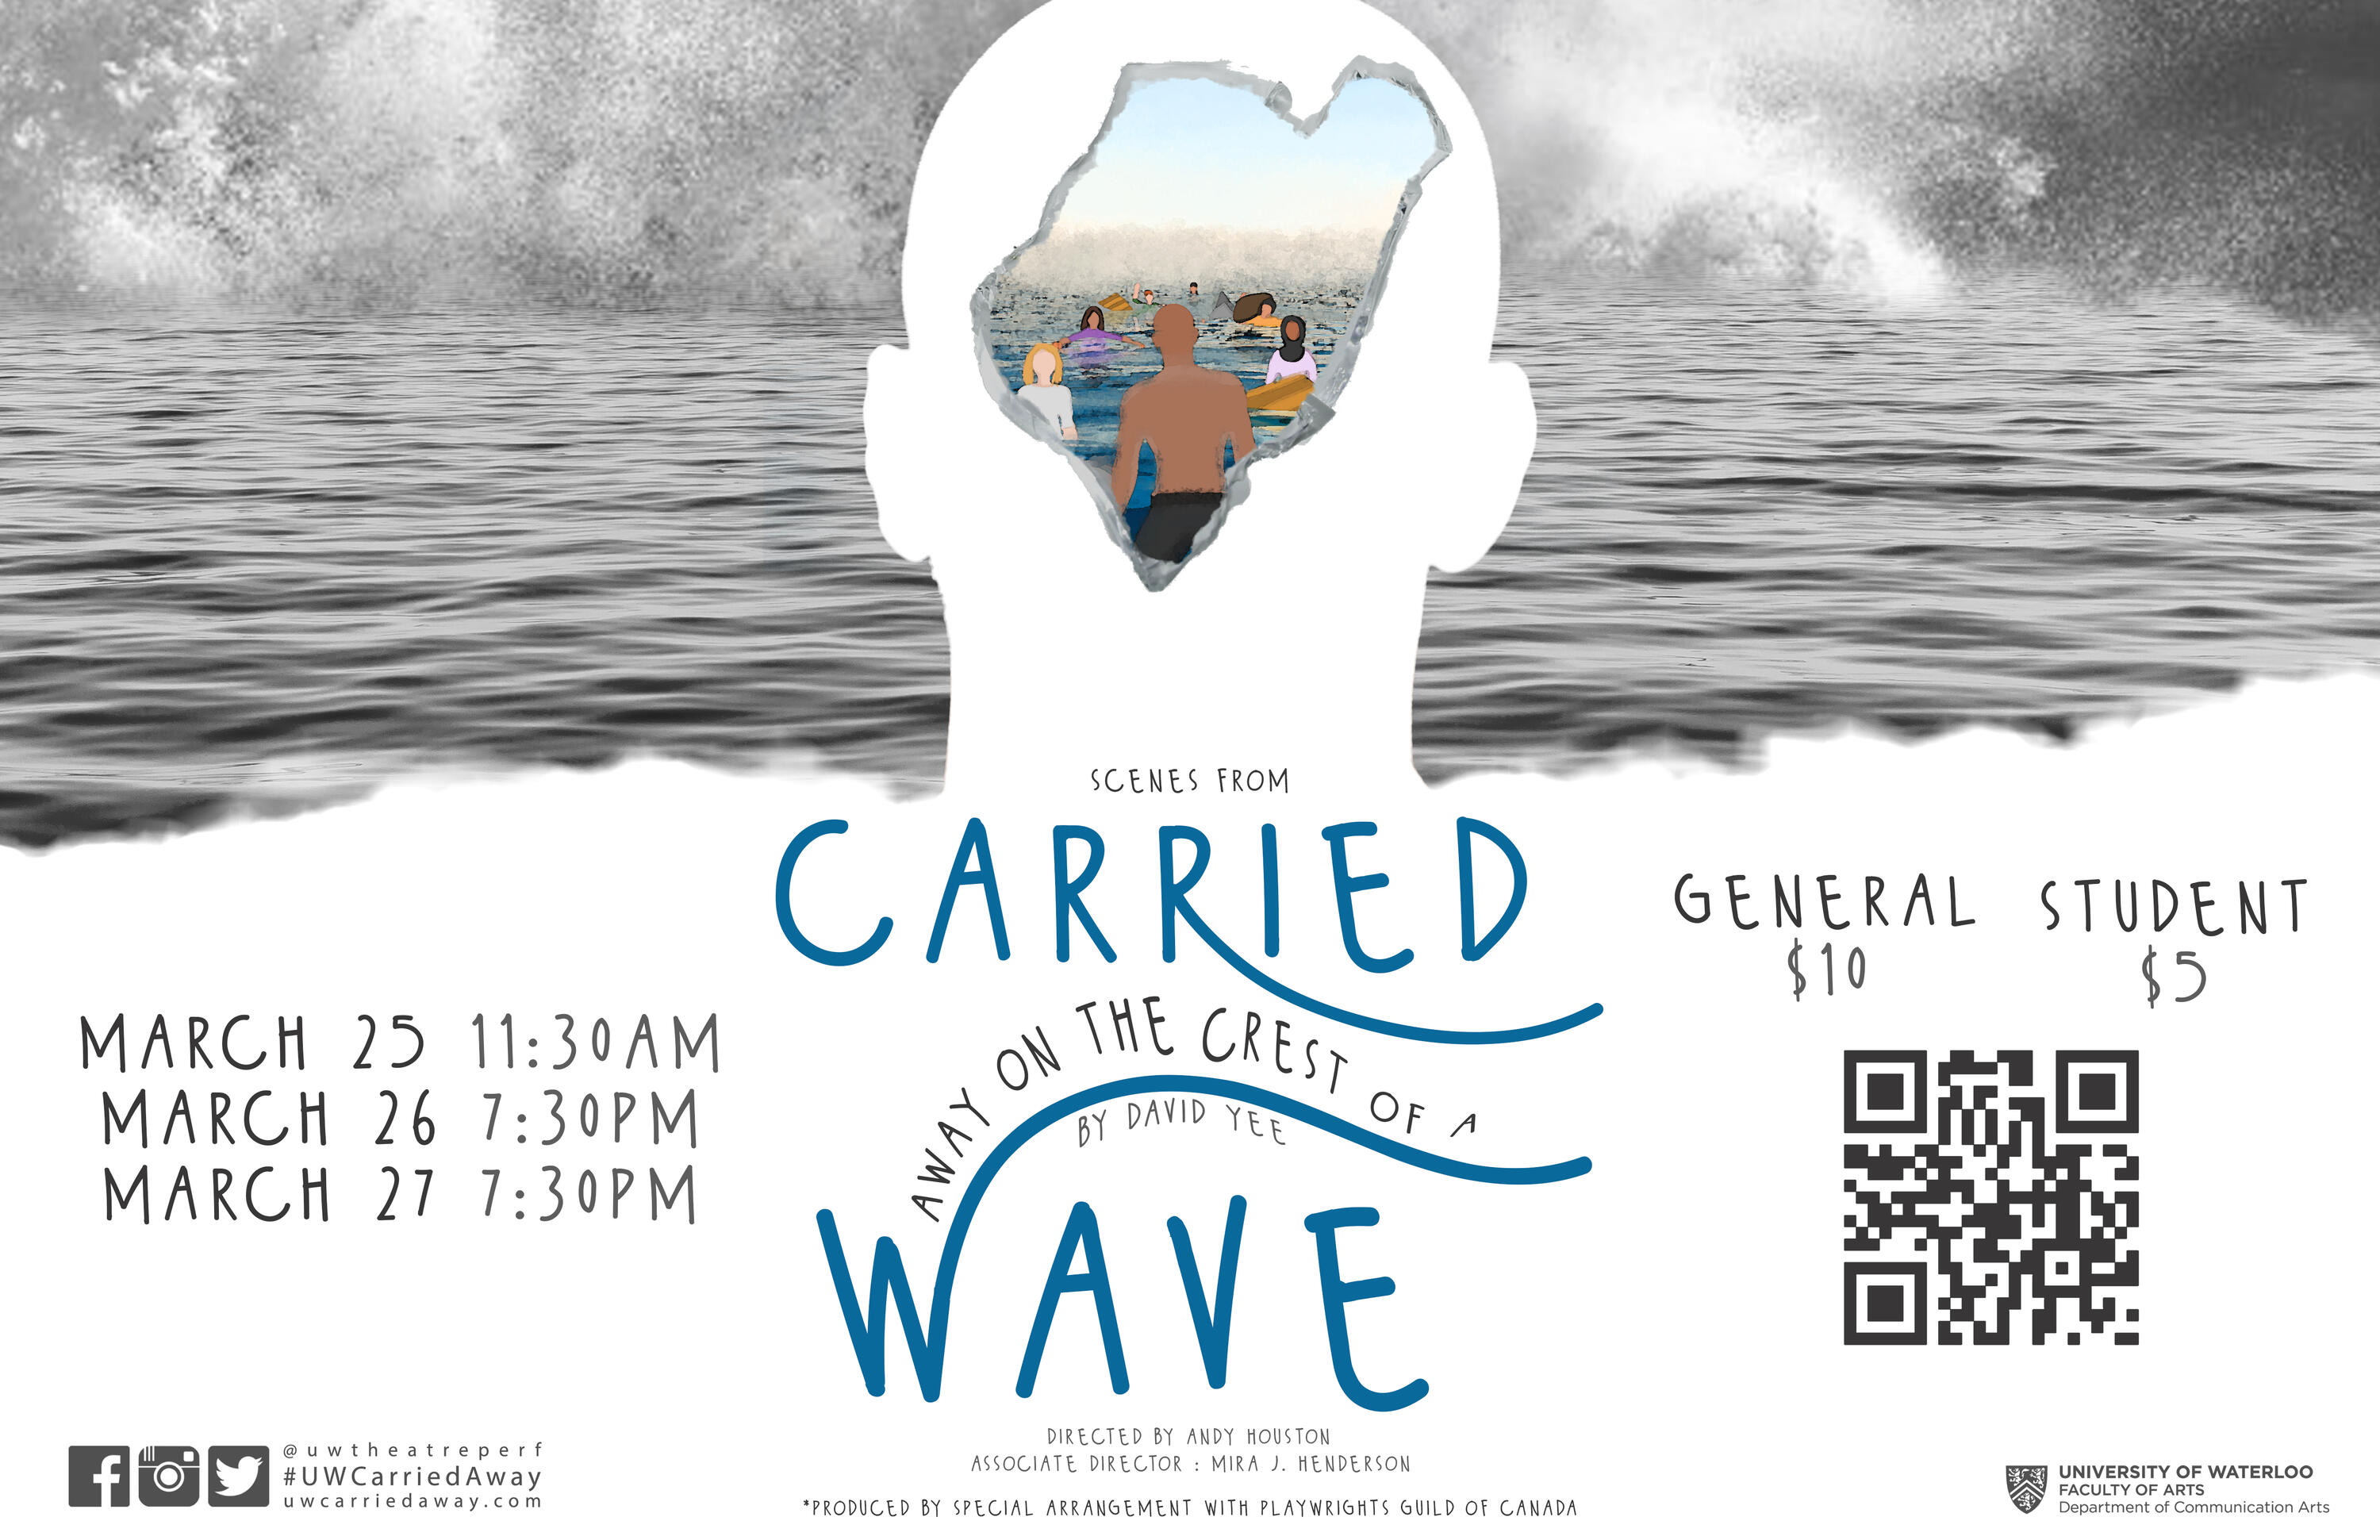 Scenes from carried away on the crest of a wave official poster